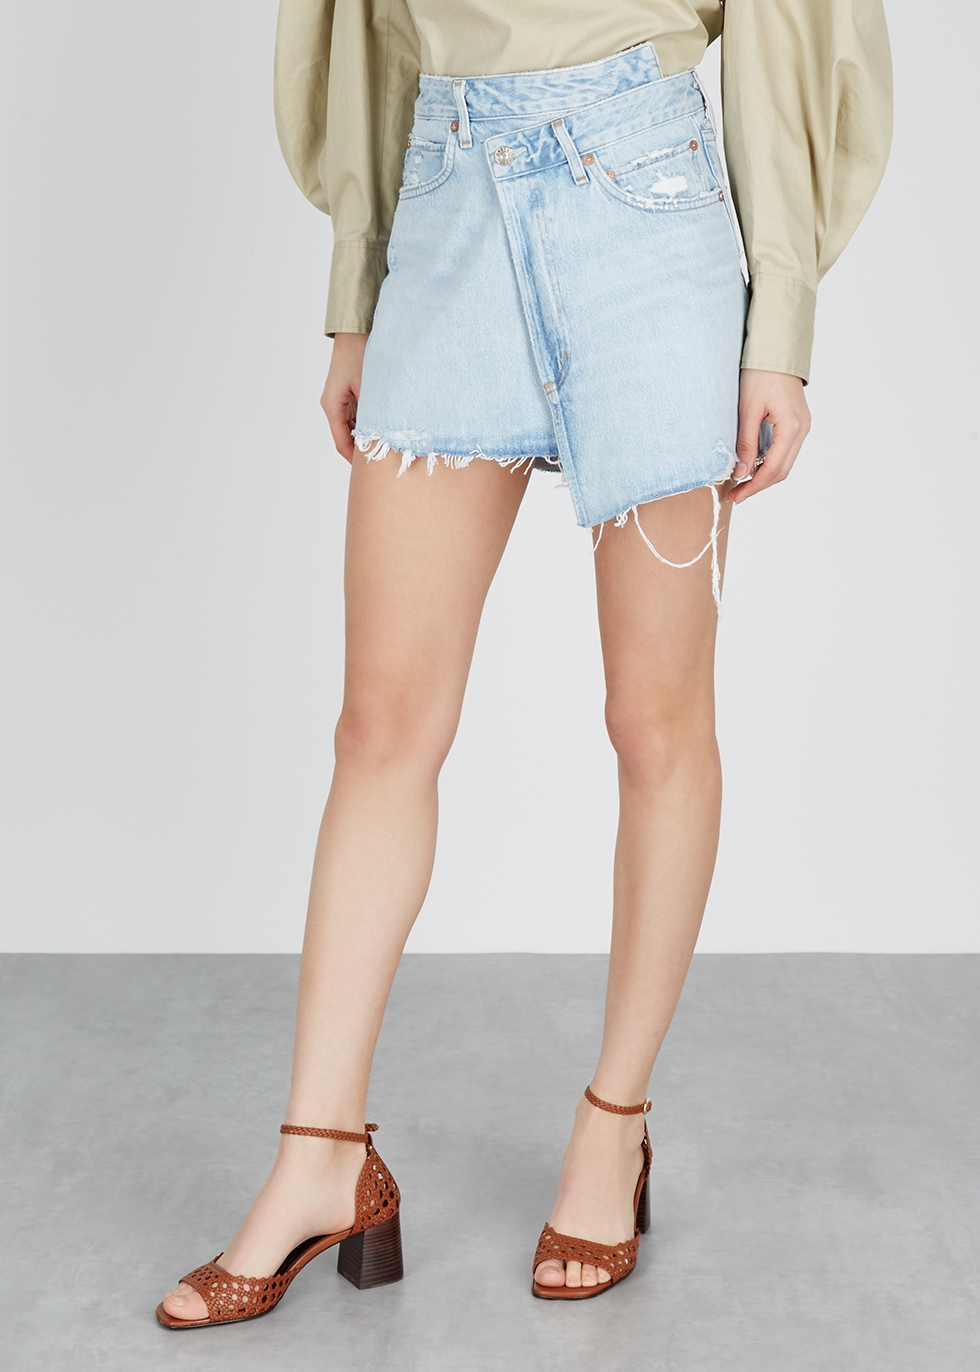 Criss Cross denim wrap skirt - AGOLDE